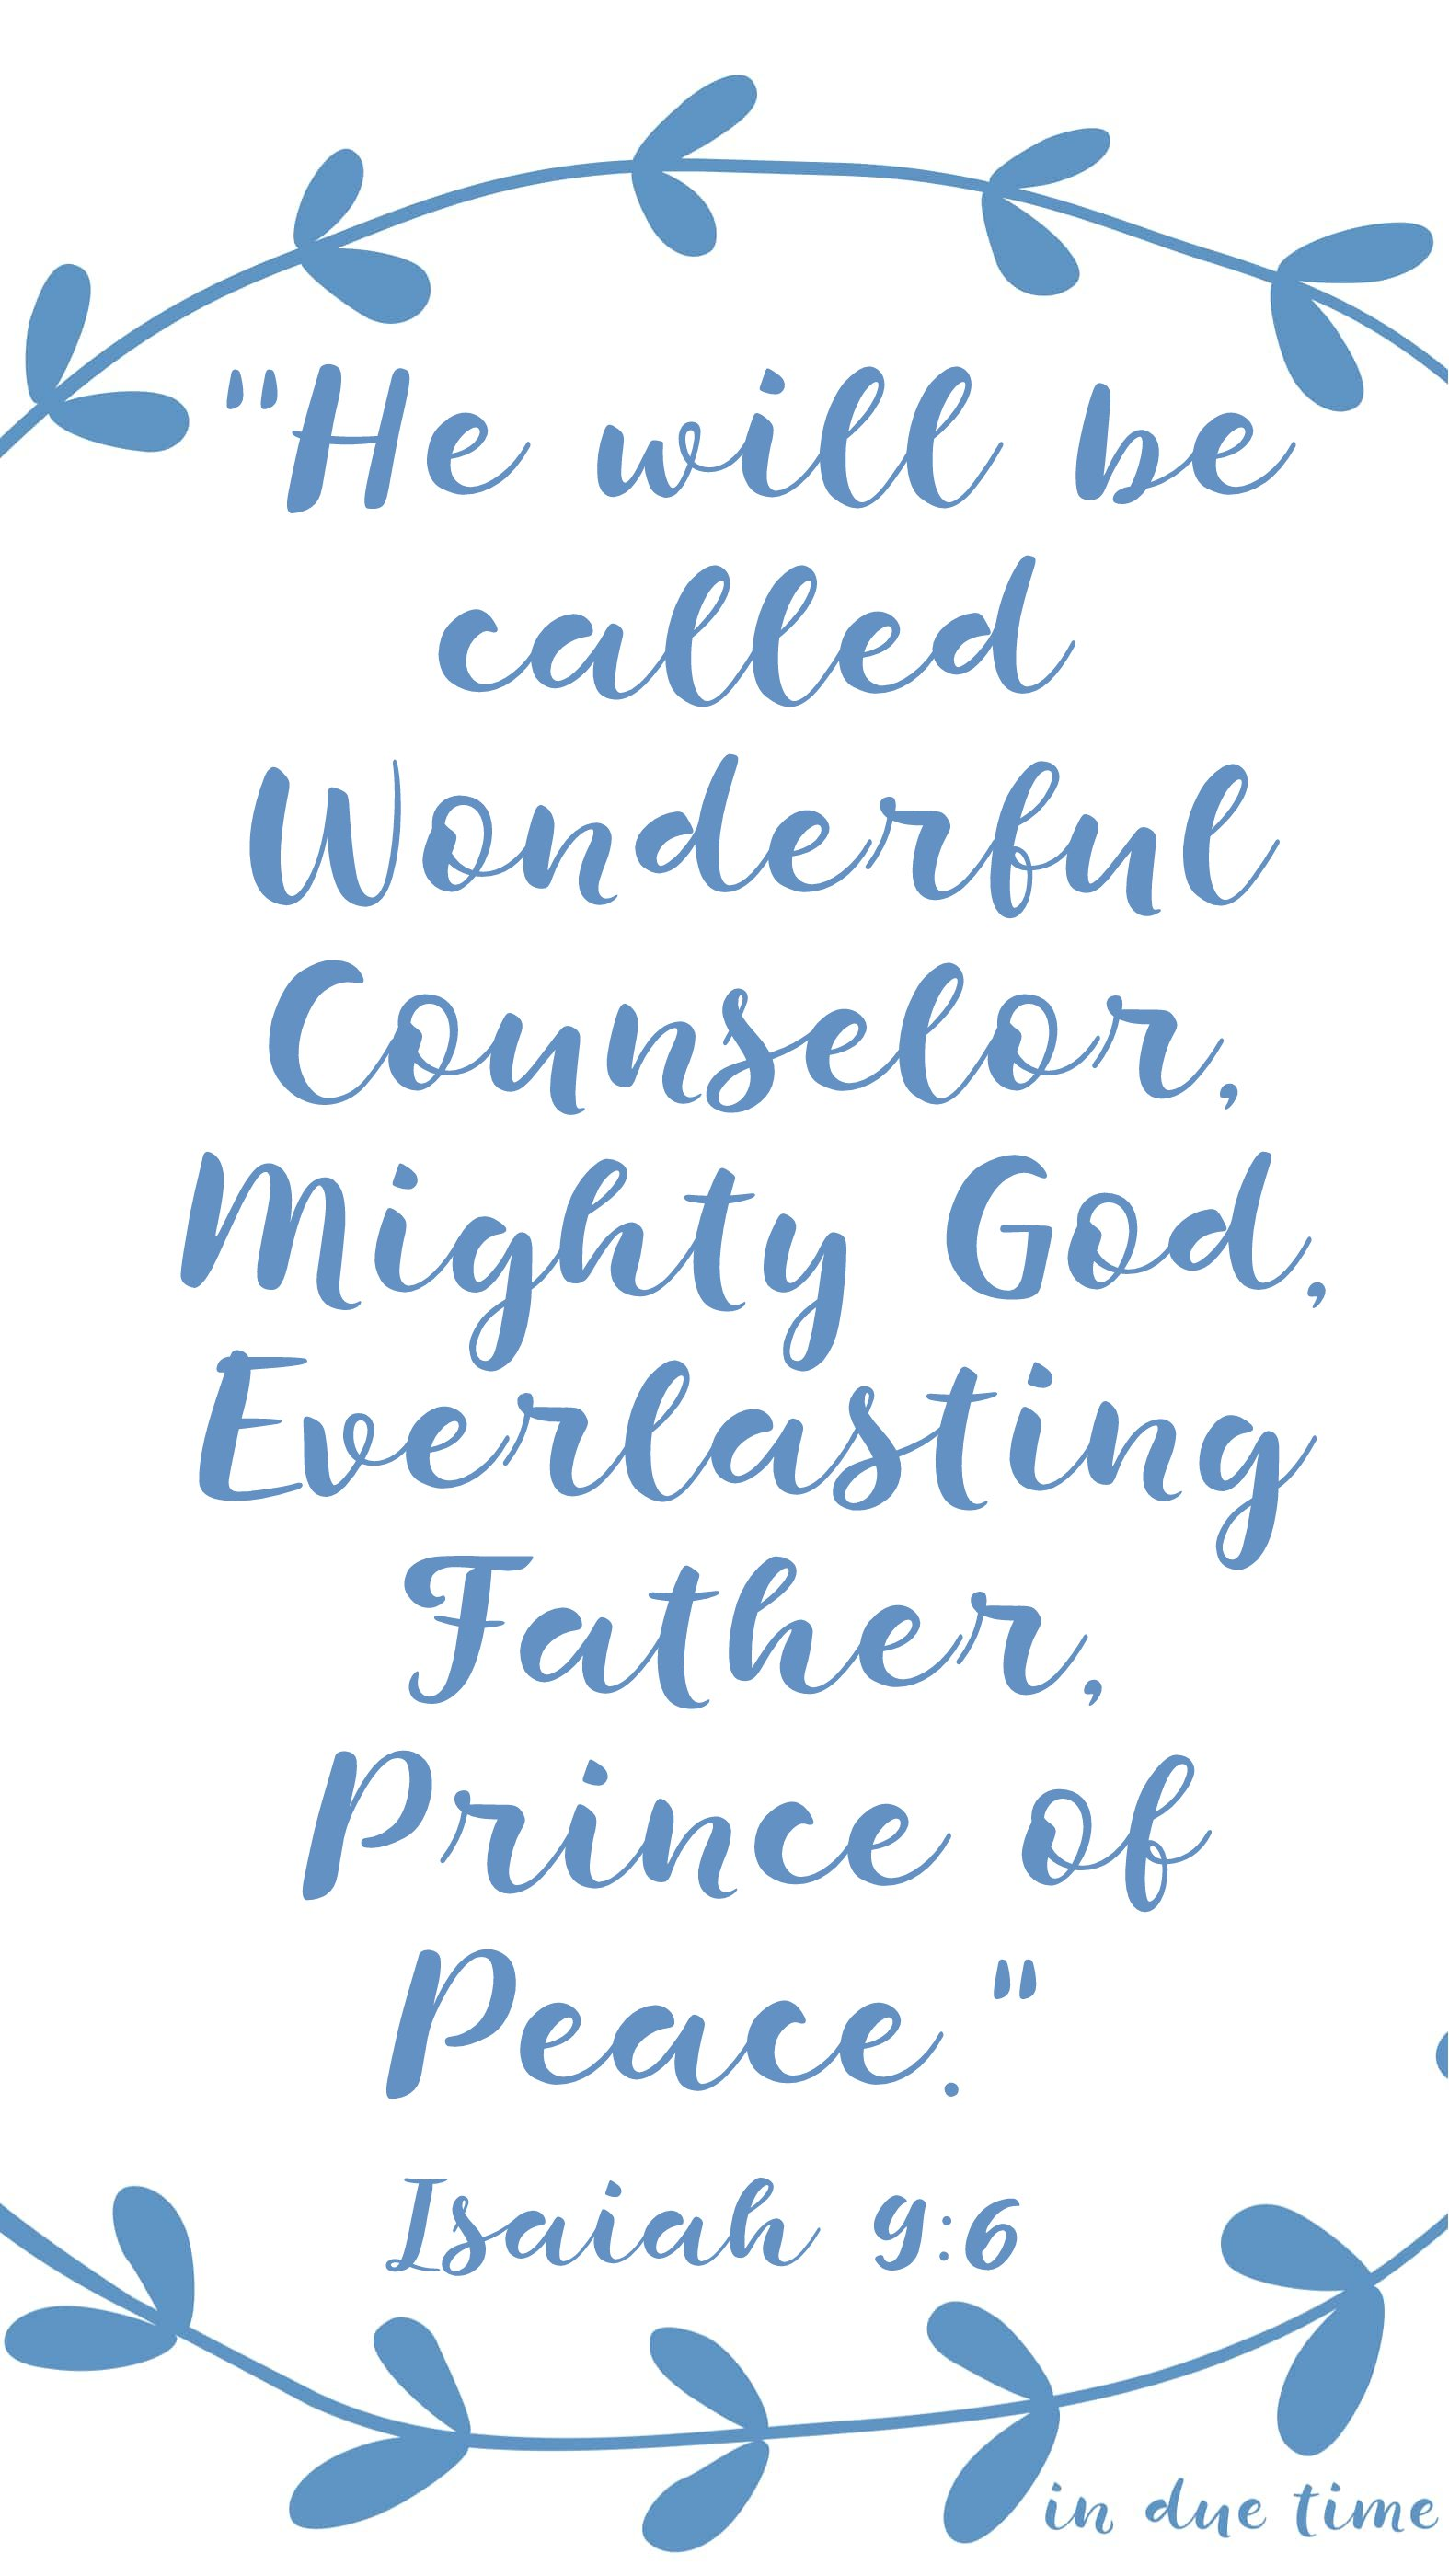 isaiah 9 - prince of peace